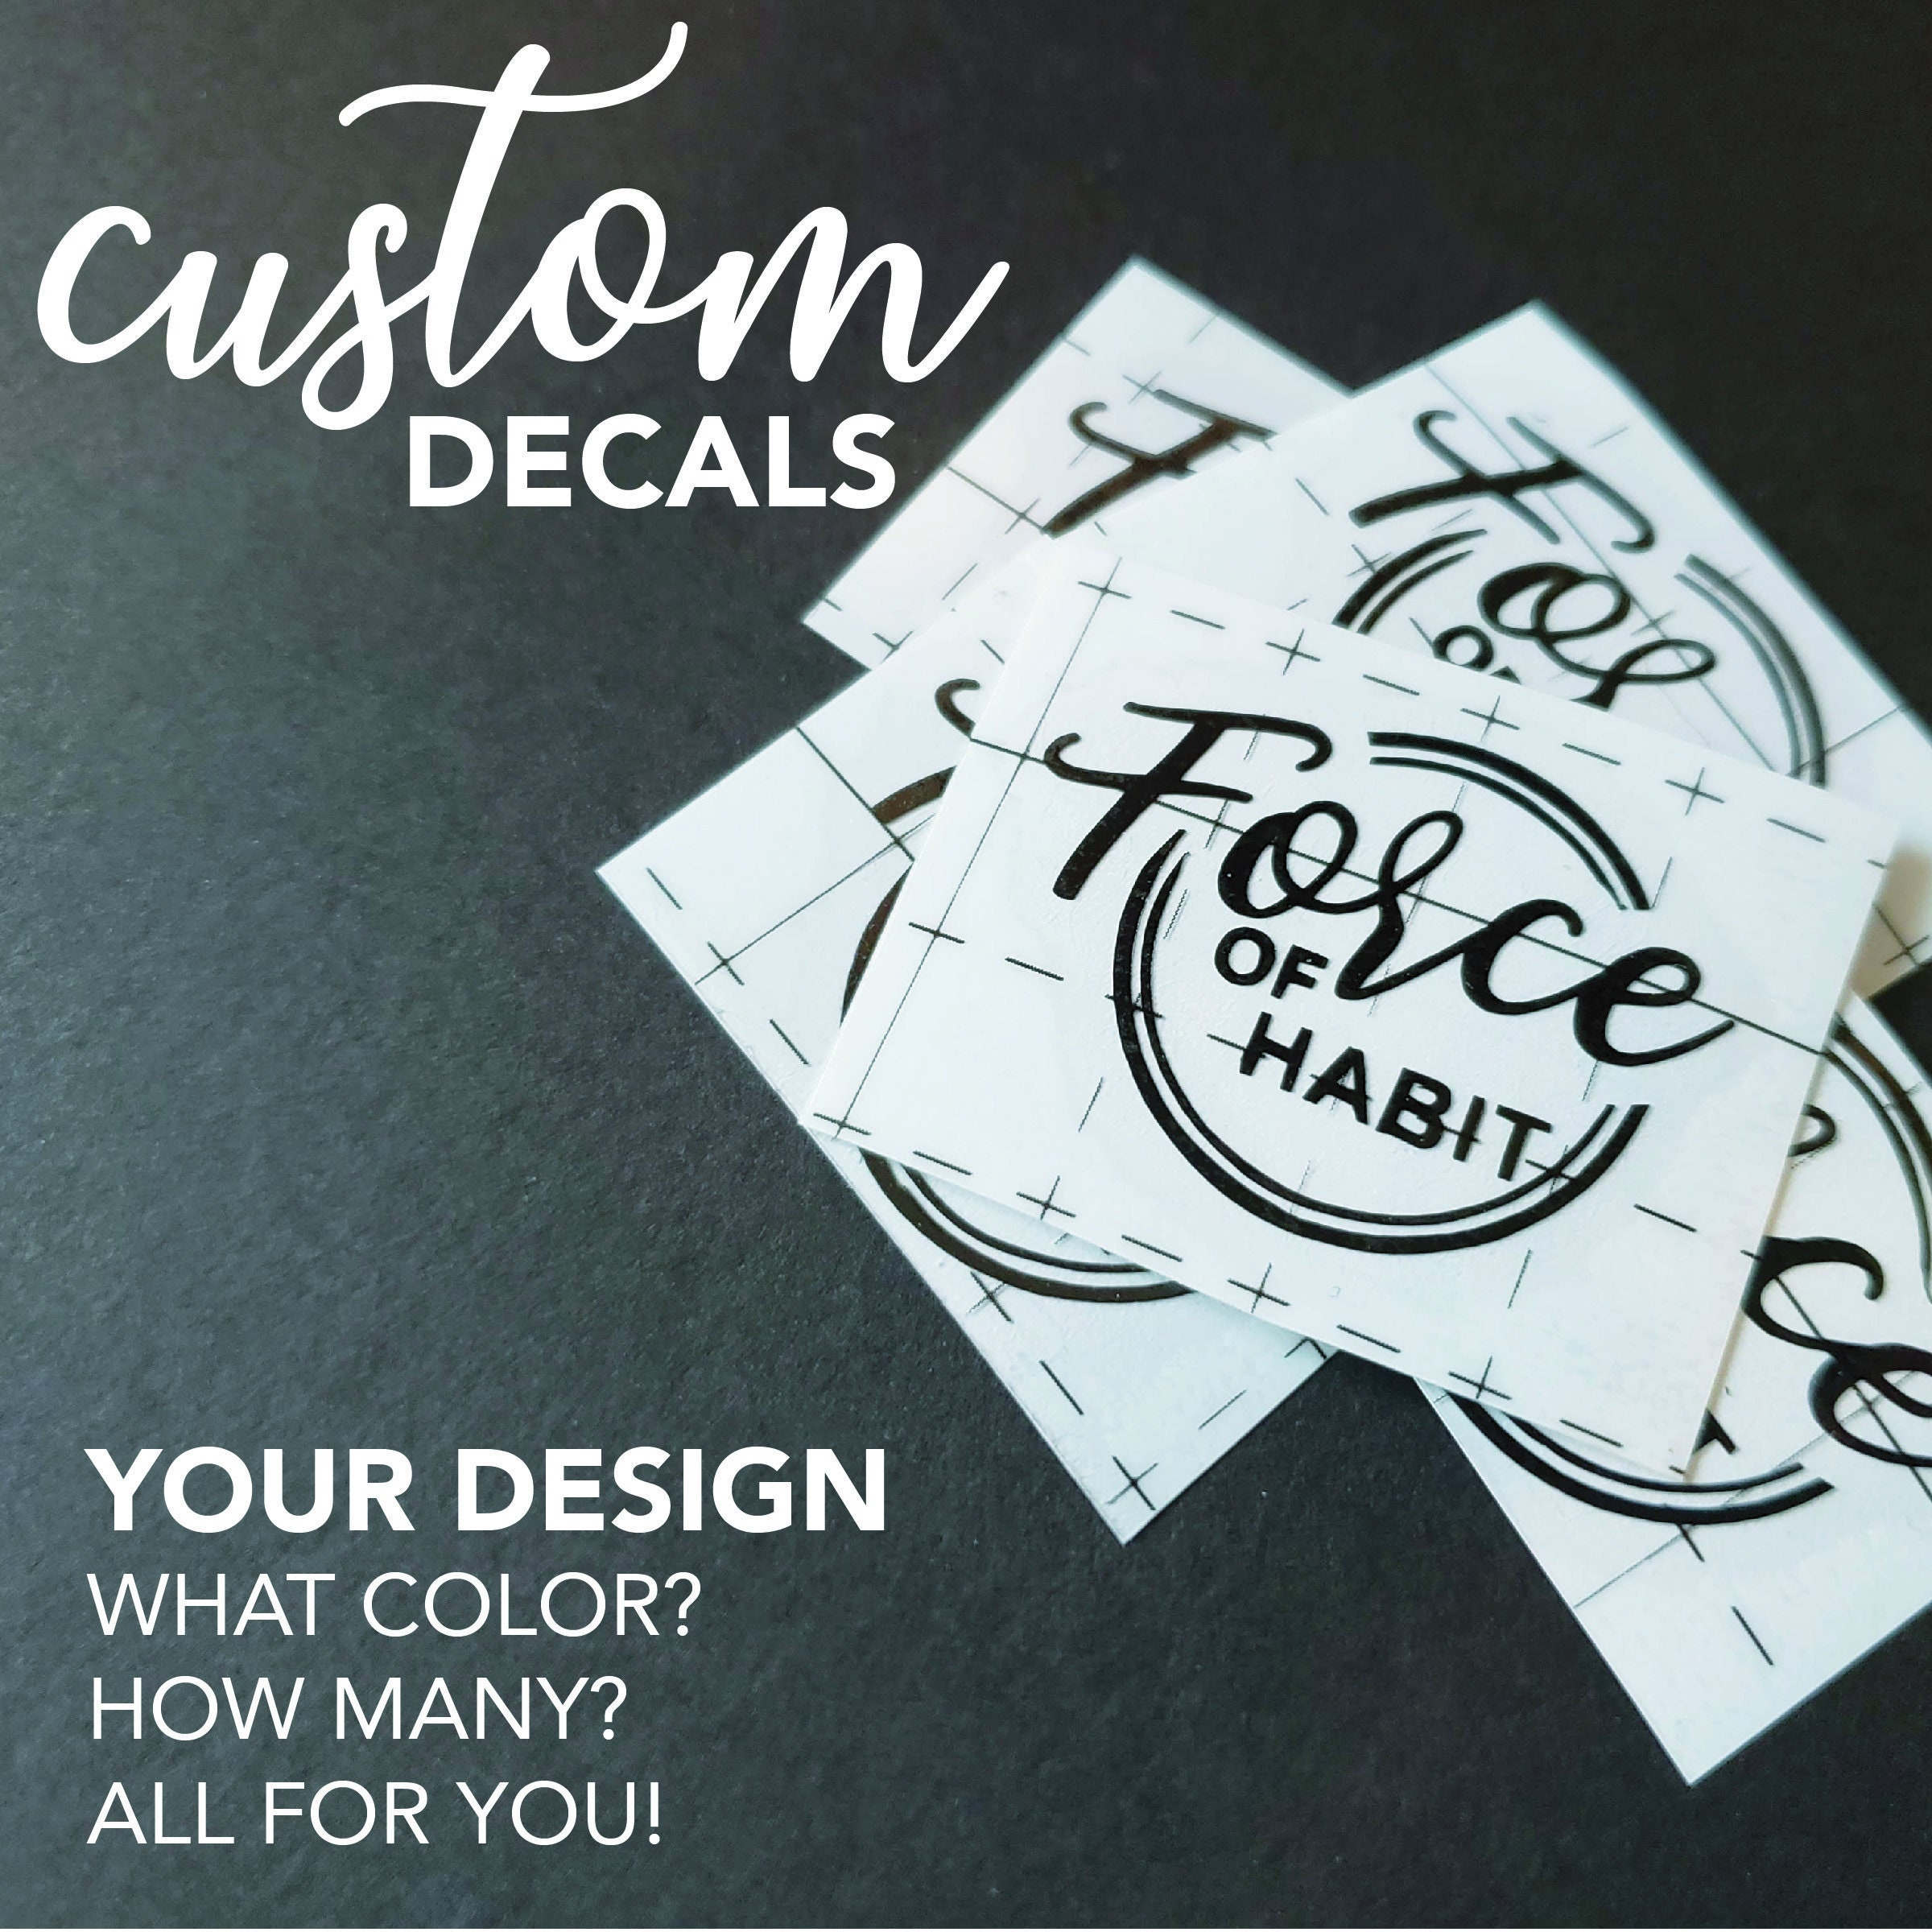 Custom decal custom vinyl decal create or design your own decal personalized decal car decal custom sticker